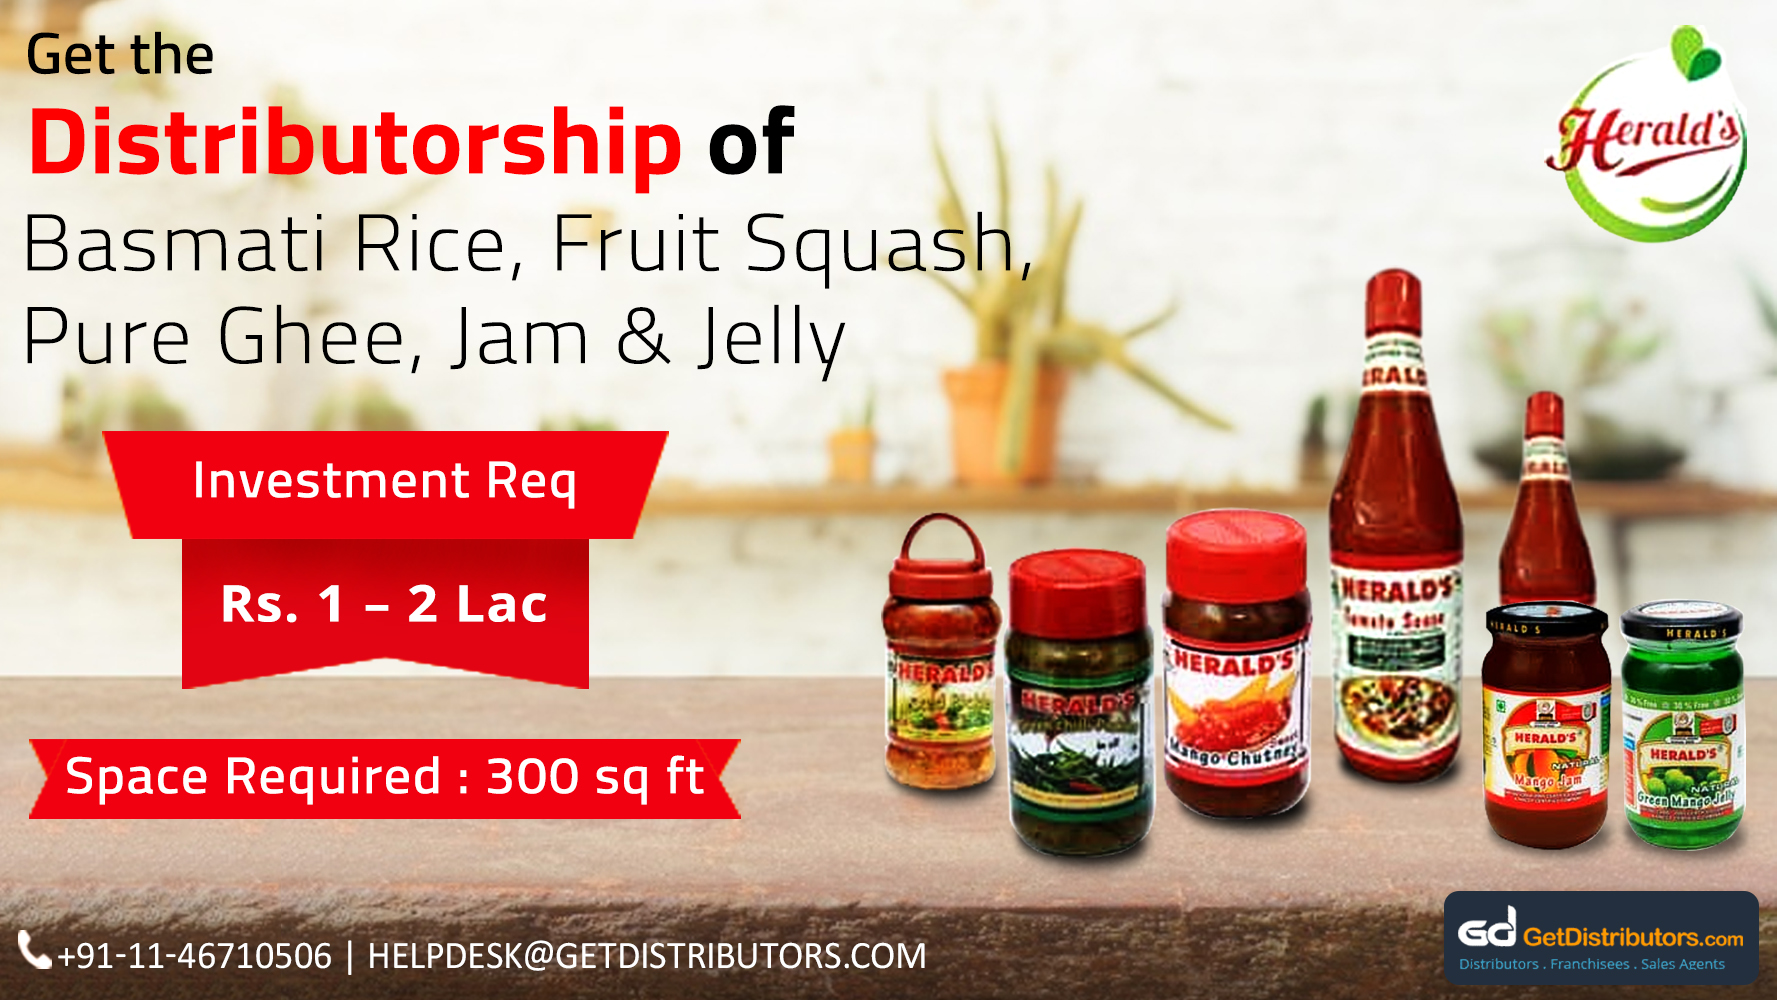 Wide Range Of Drinks, Chutneys, And Other Food Products At Nominal Prices